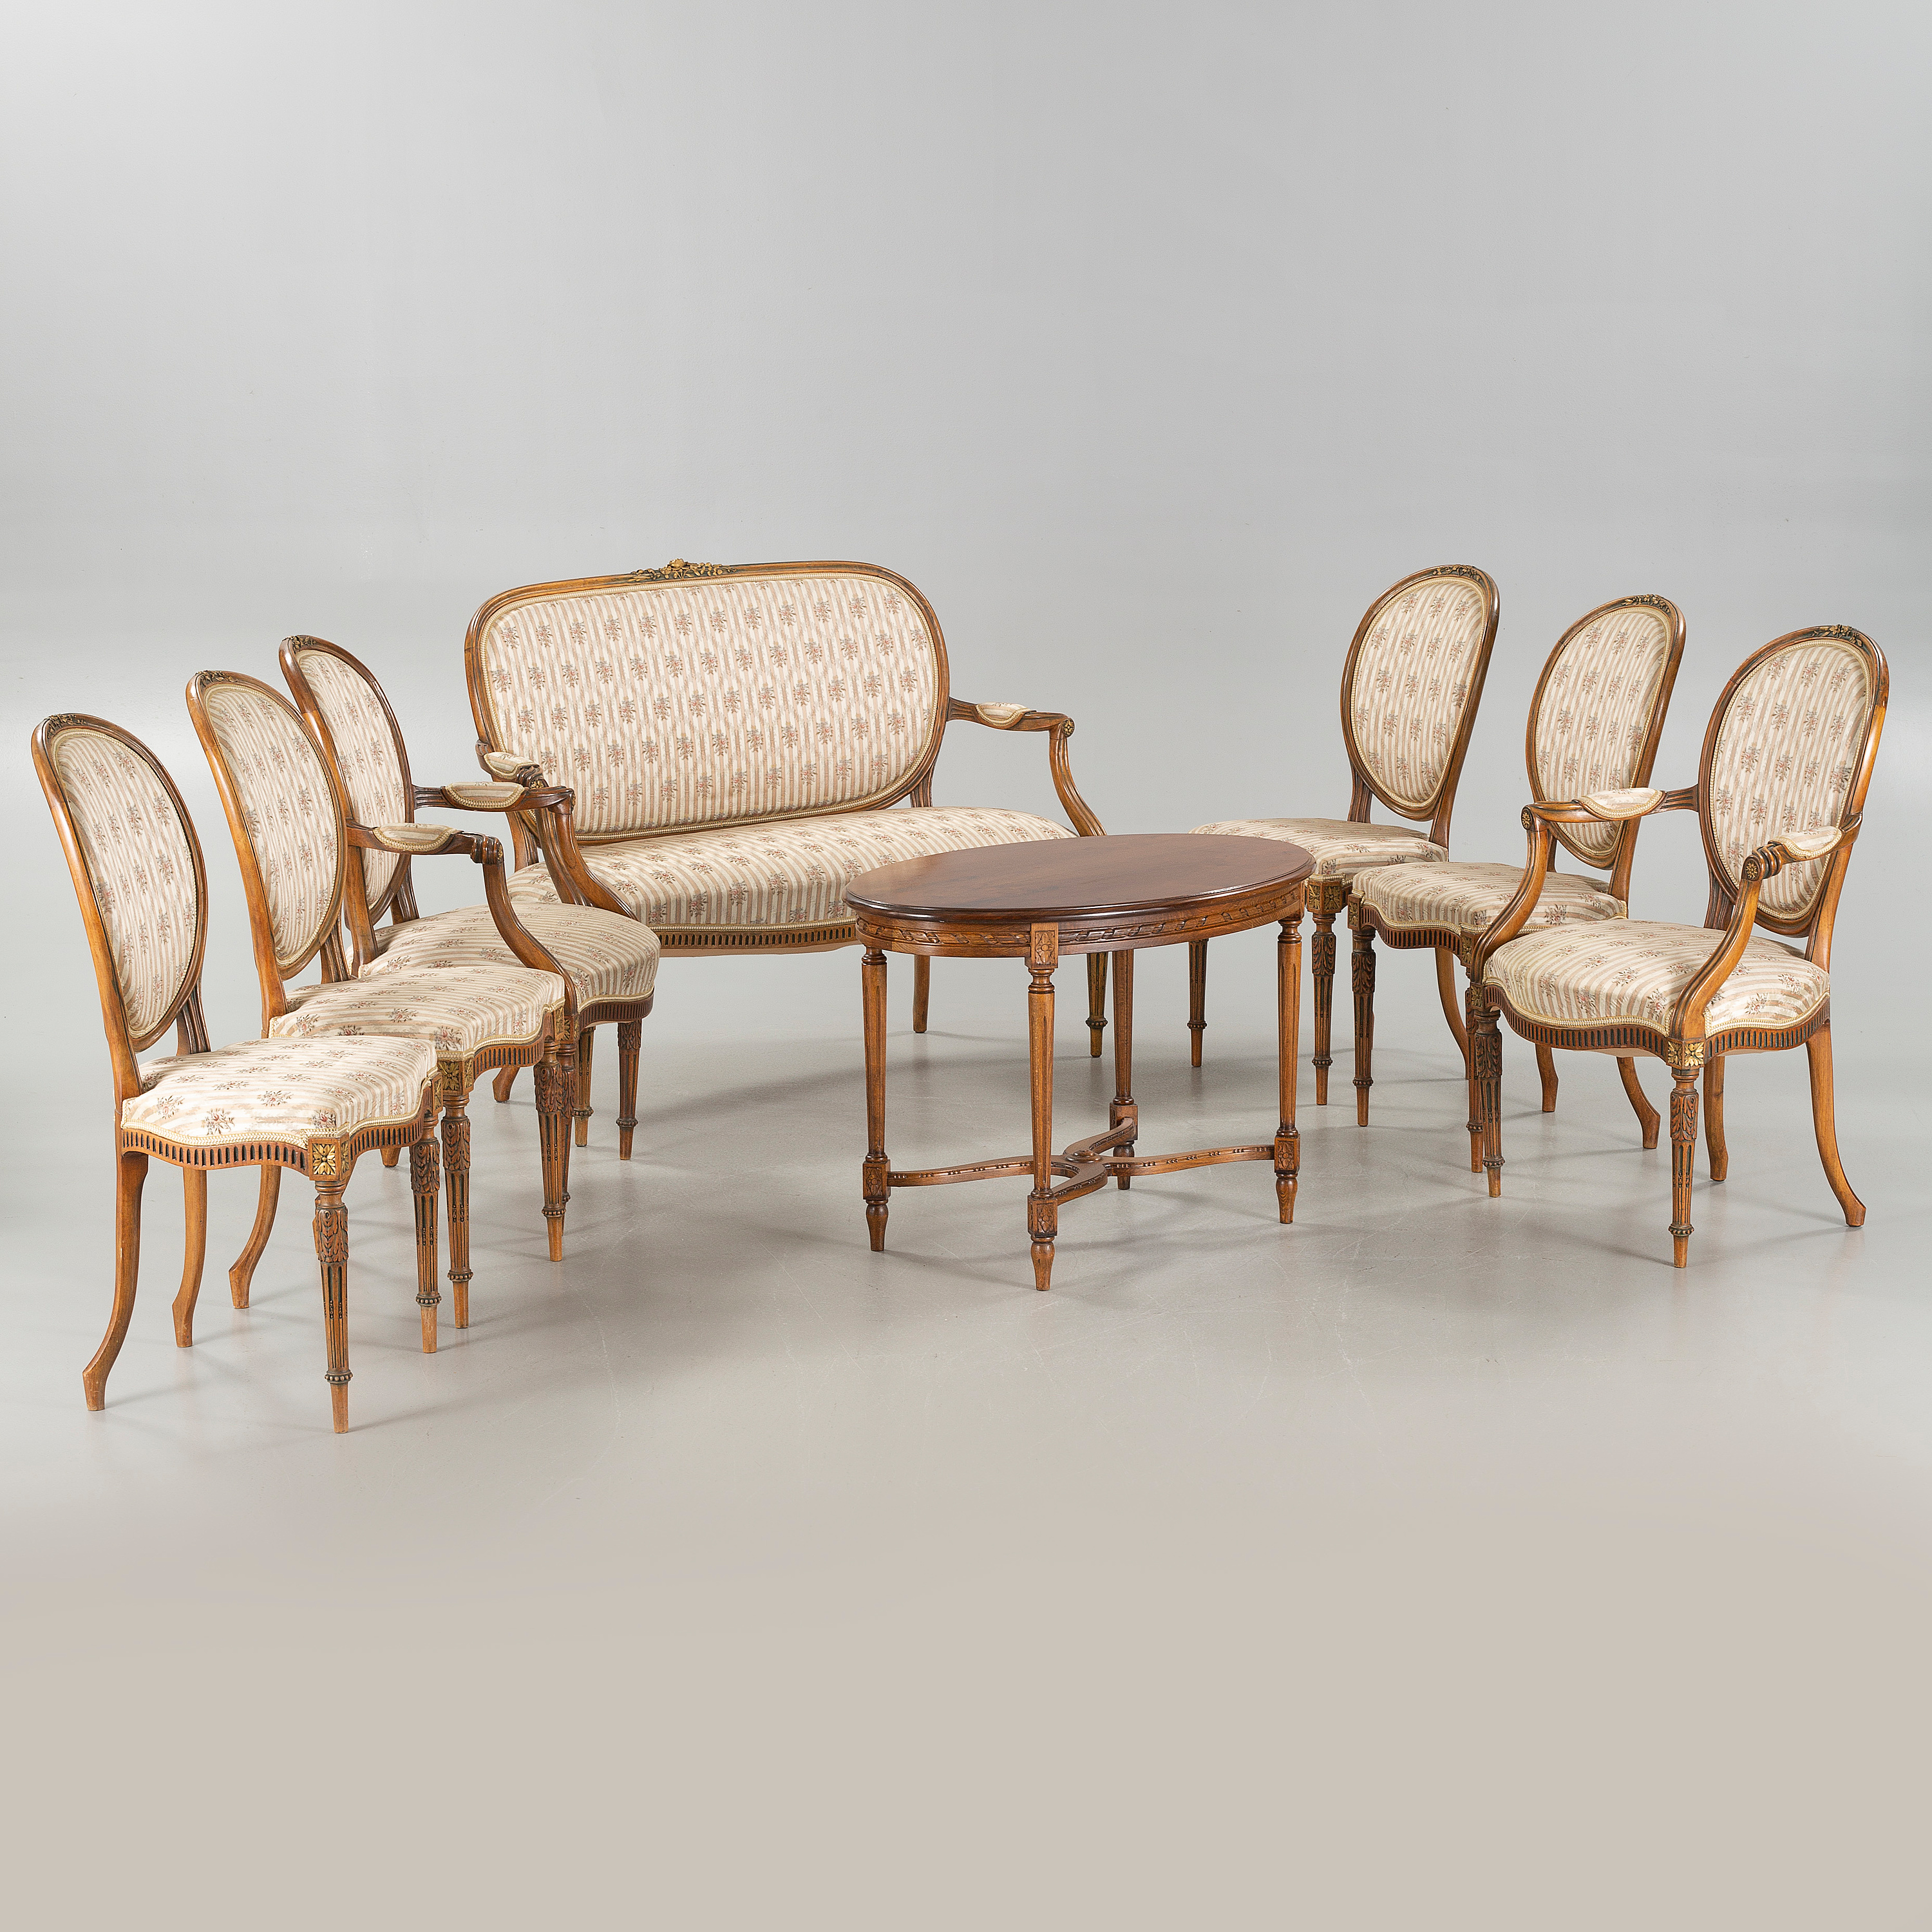 A Set Of Eigth Louis XVI Style Furniture, First Half Of The 20th Centurty.    Bukowskis